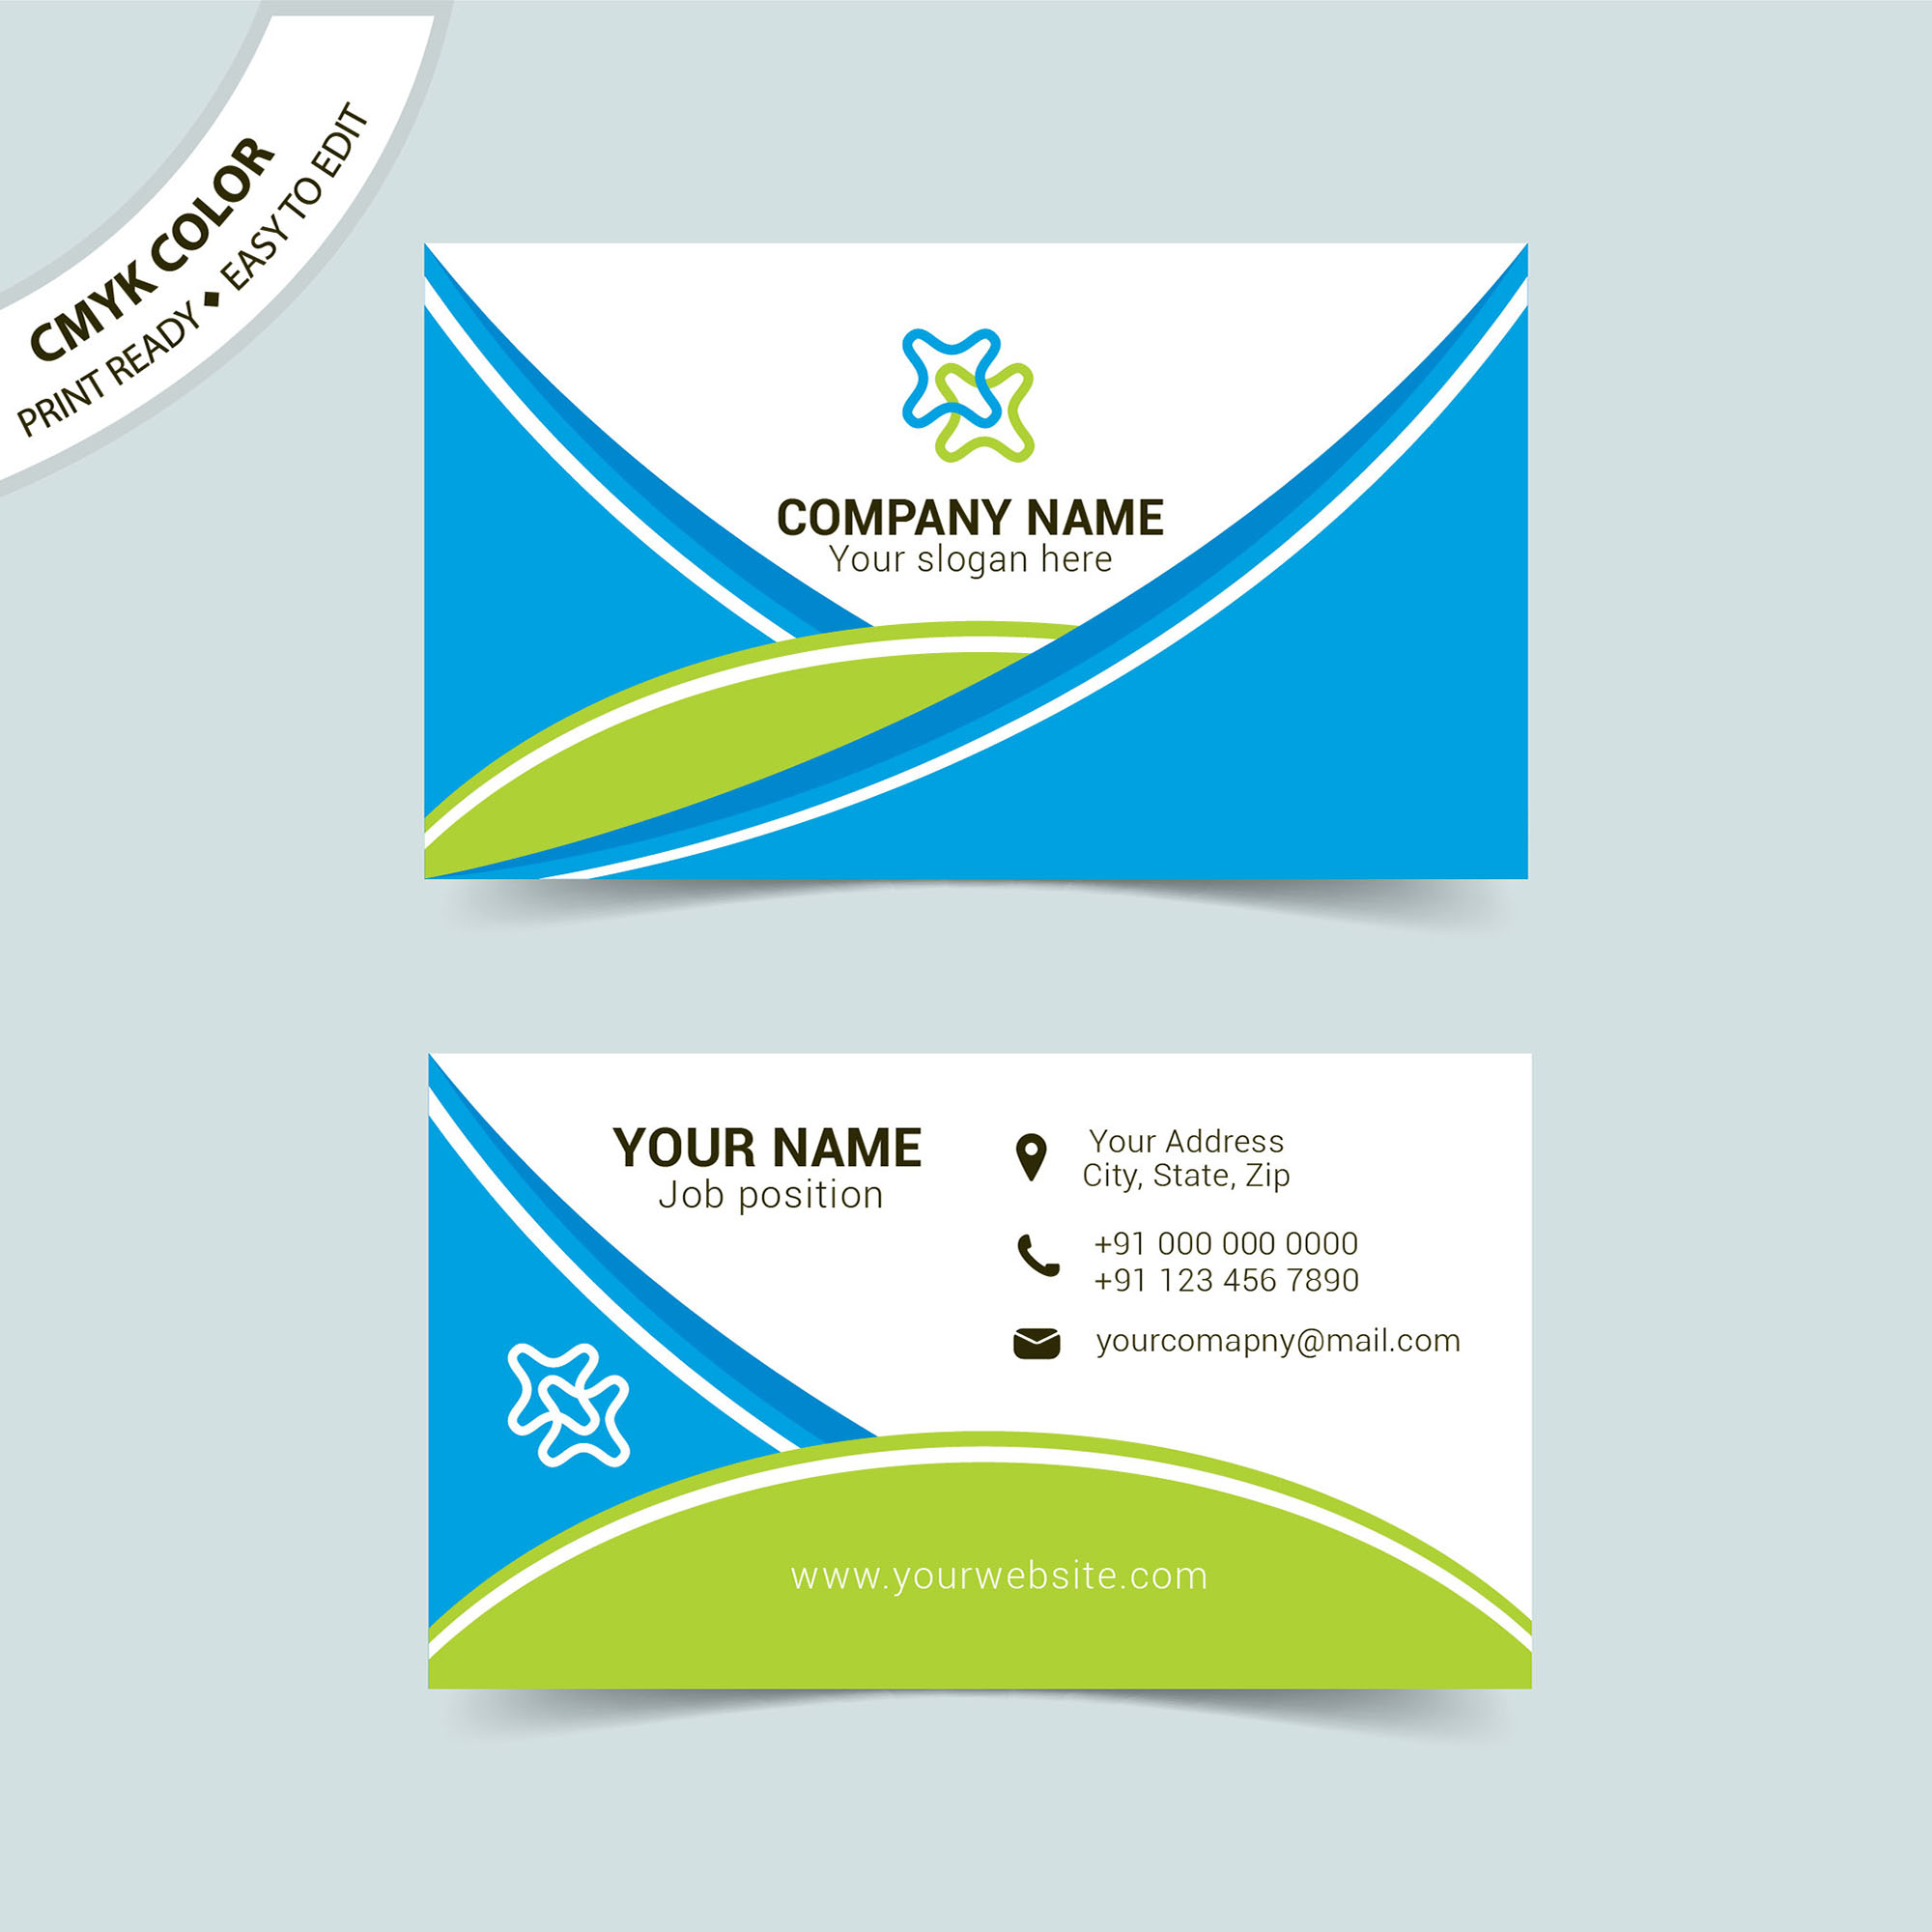 Creative business card vector template free download wisxi business card business cards business card design business card template design templates accmission Image collections